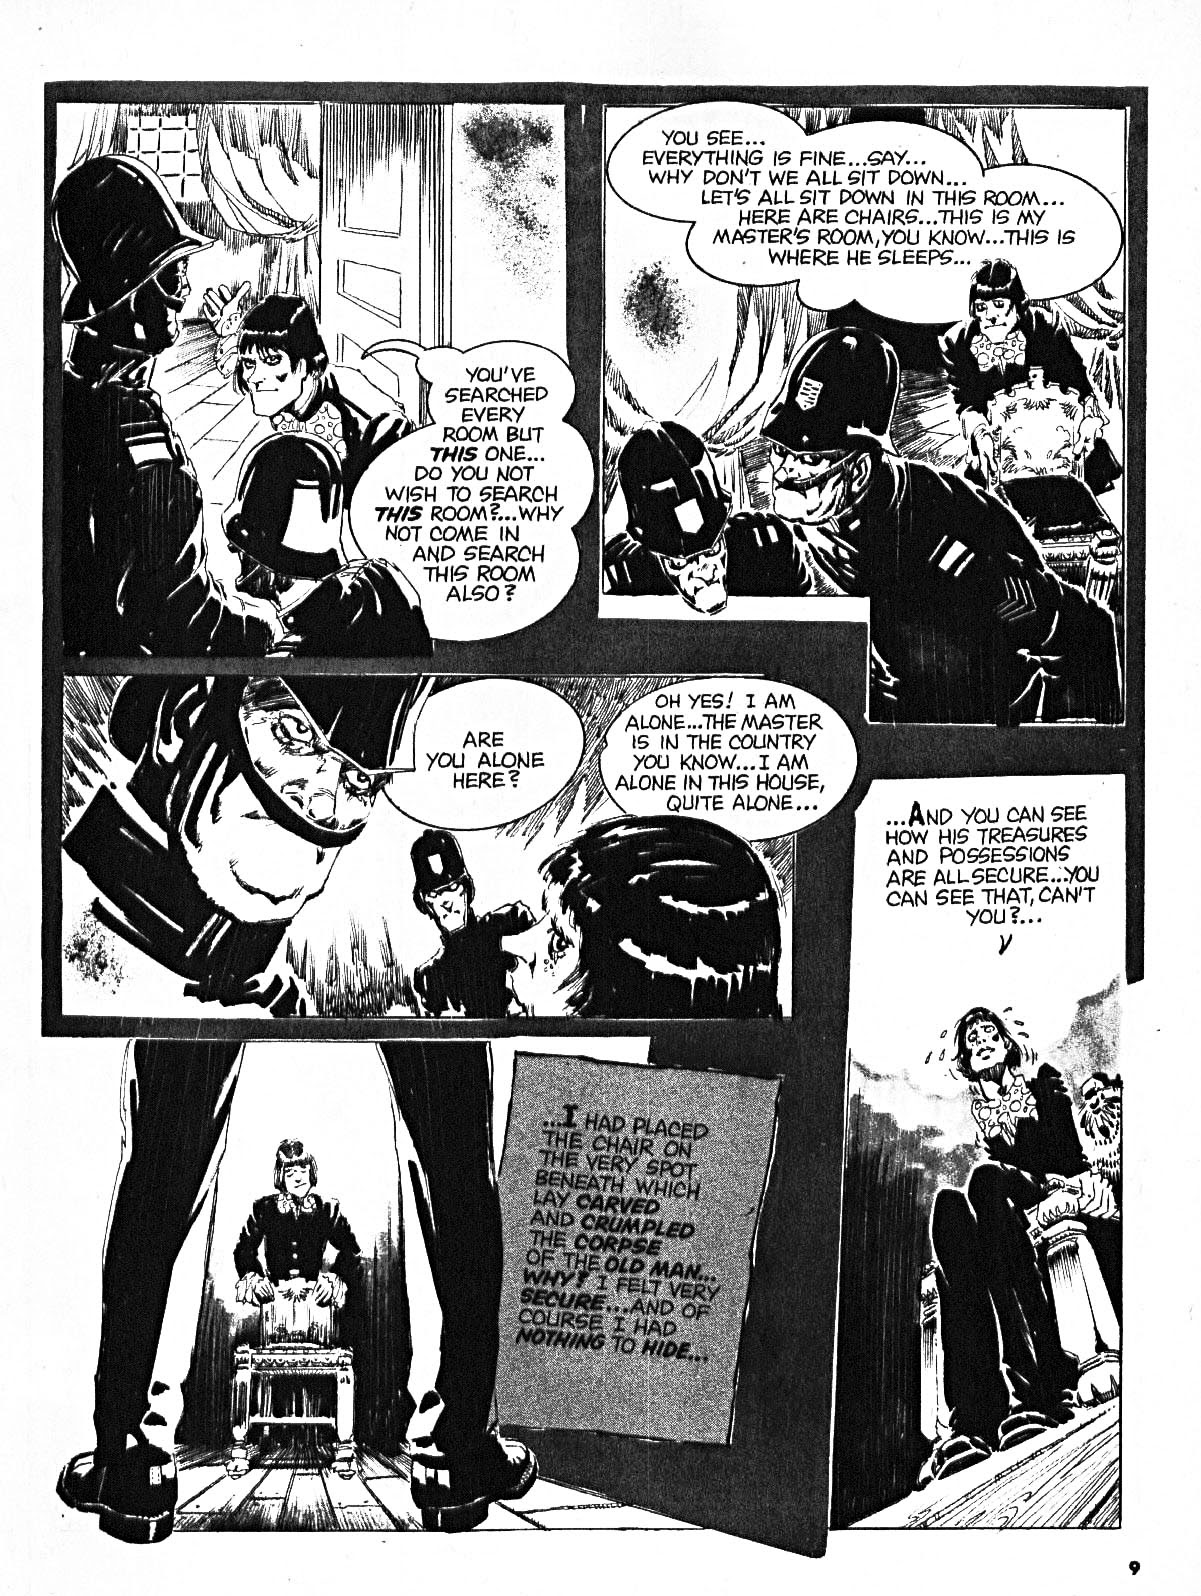 Scream (1973) issue 8 - Page 9